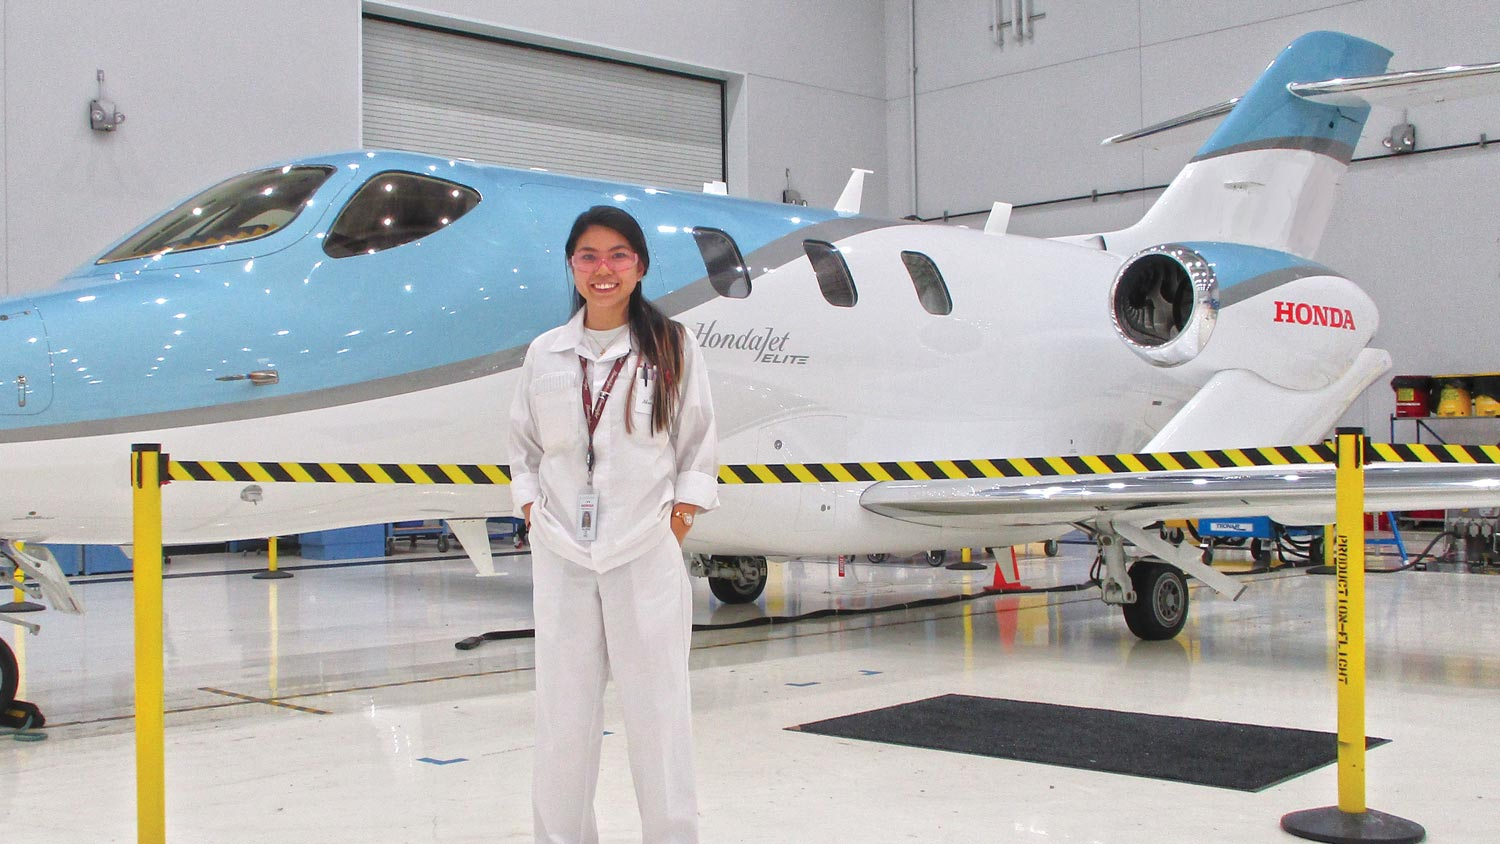 Allison Fink, amanufacturing engineering technology major, completed a co-opat Honda Aircraft Co. as a manufacturing engineering and production support intern.